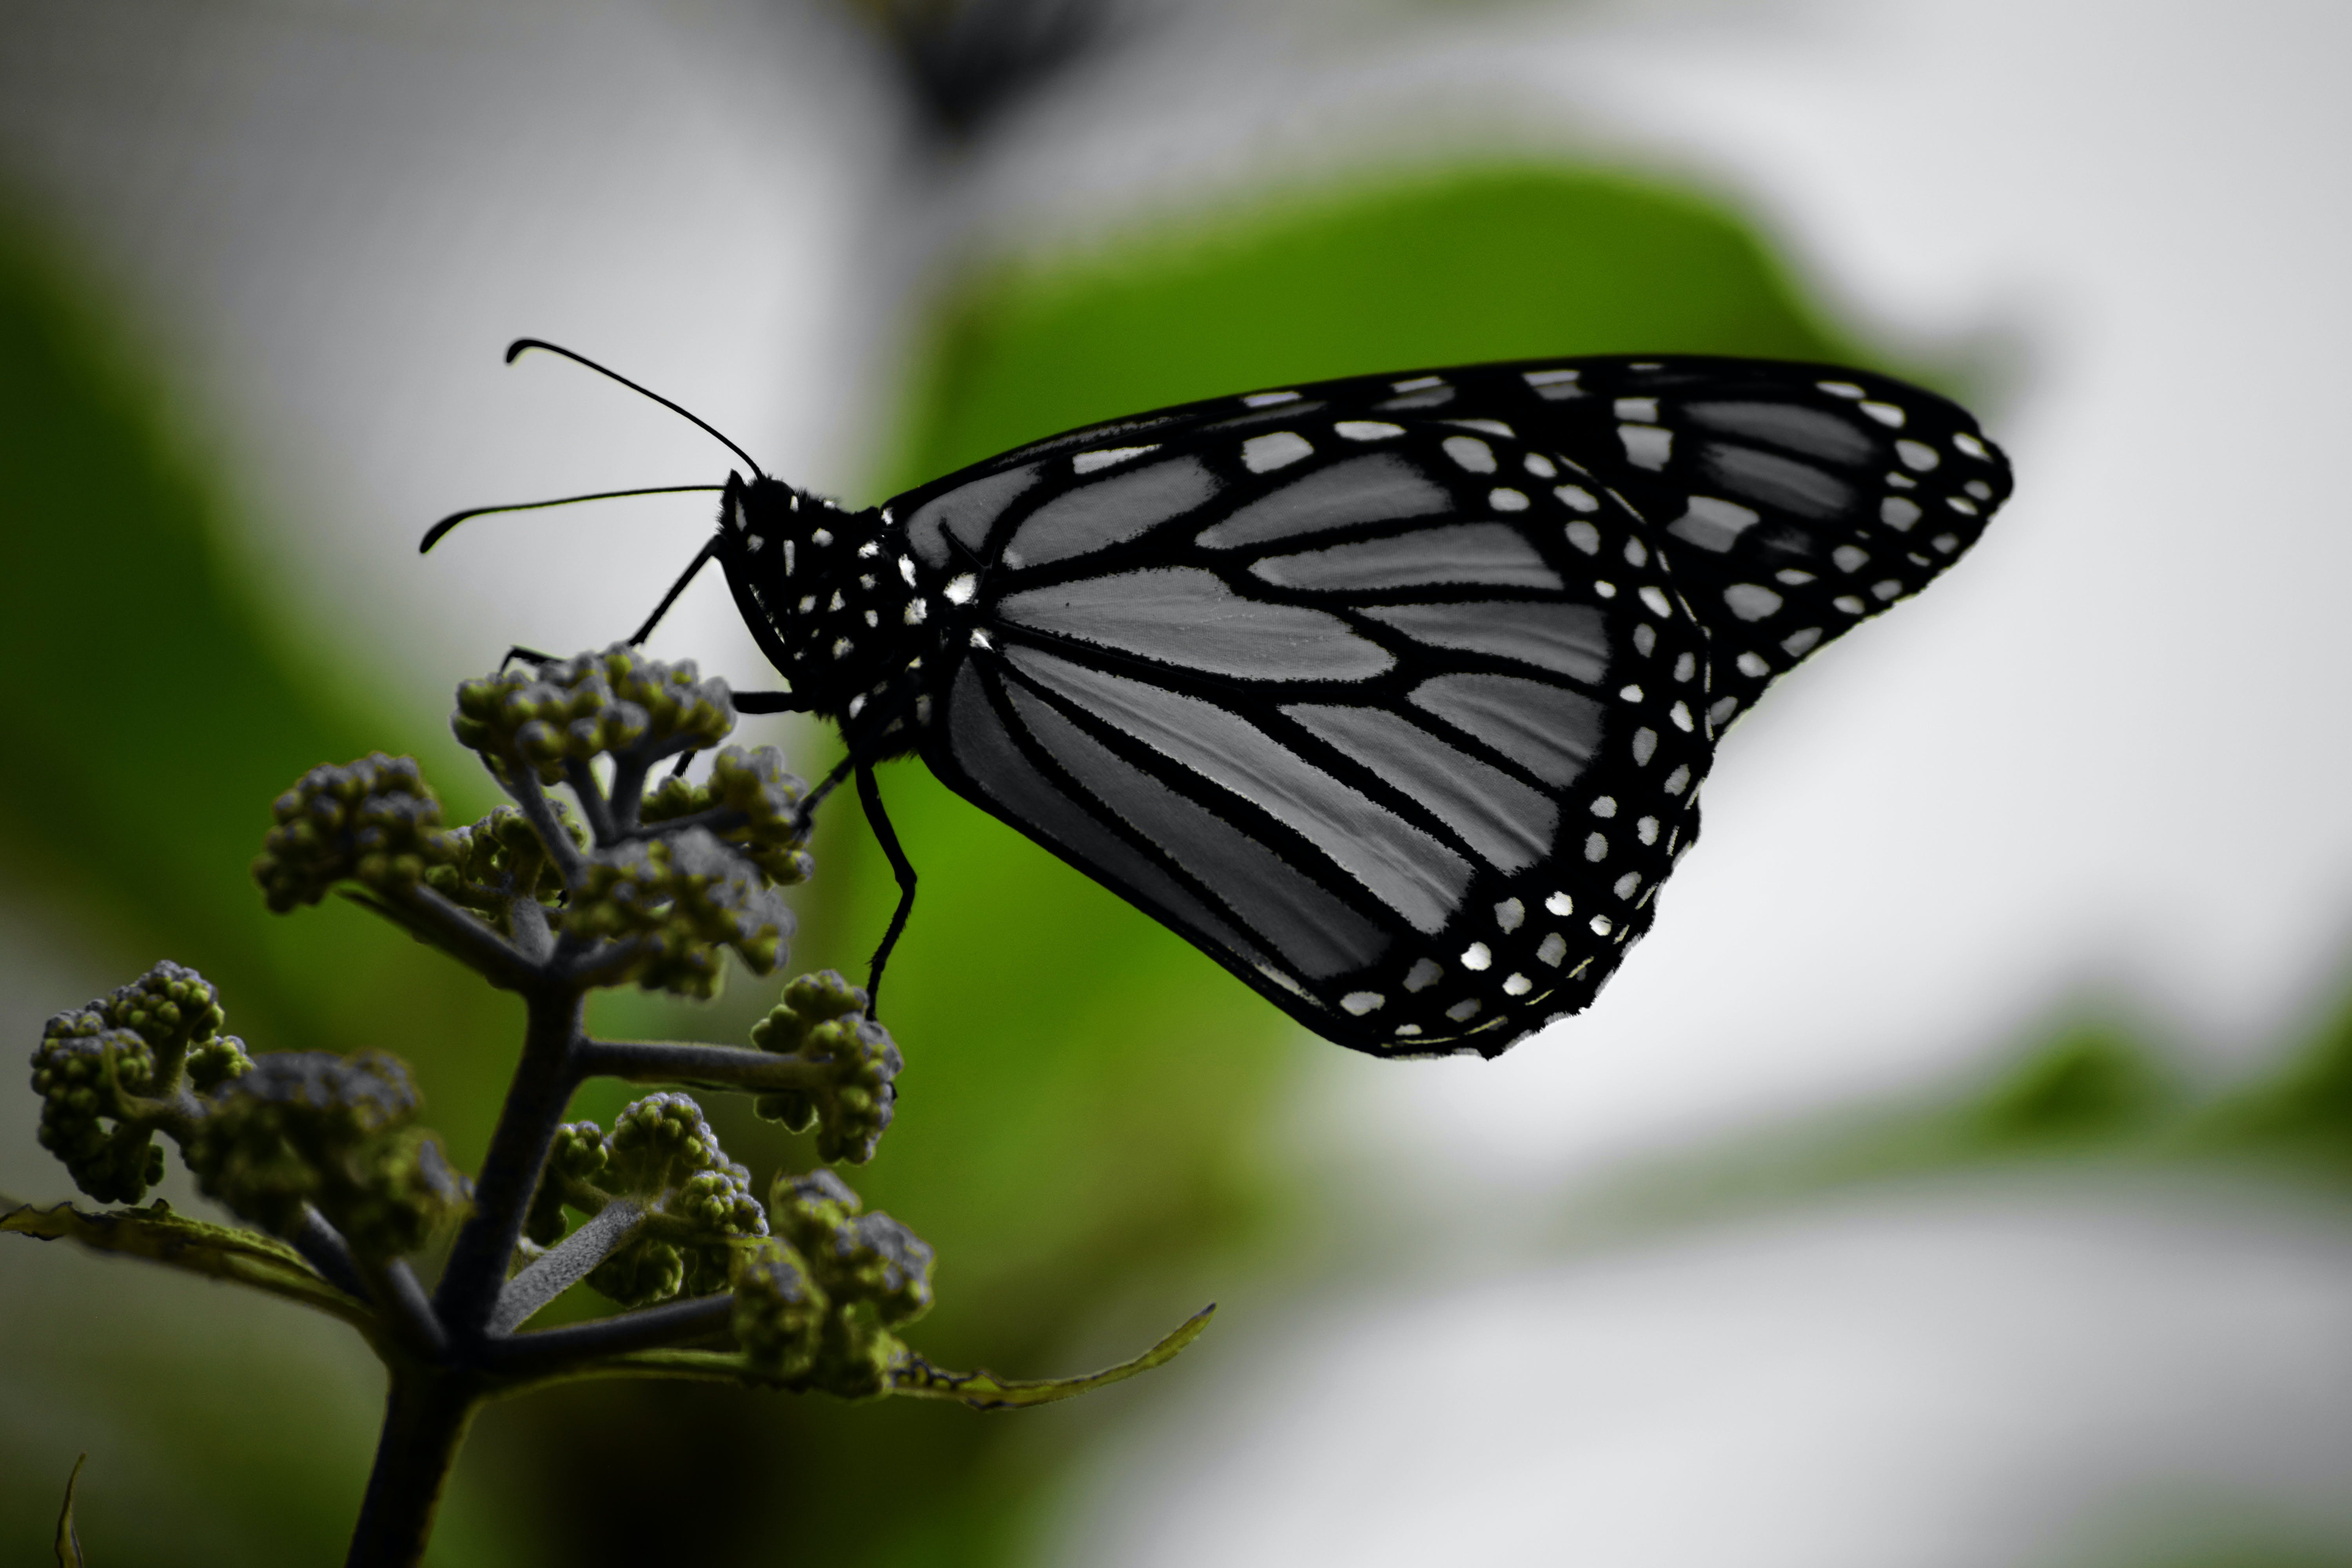 White and Black Monarch Butterfly on Green Plant